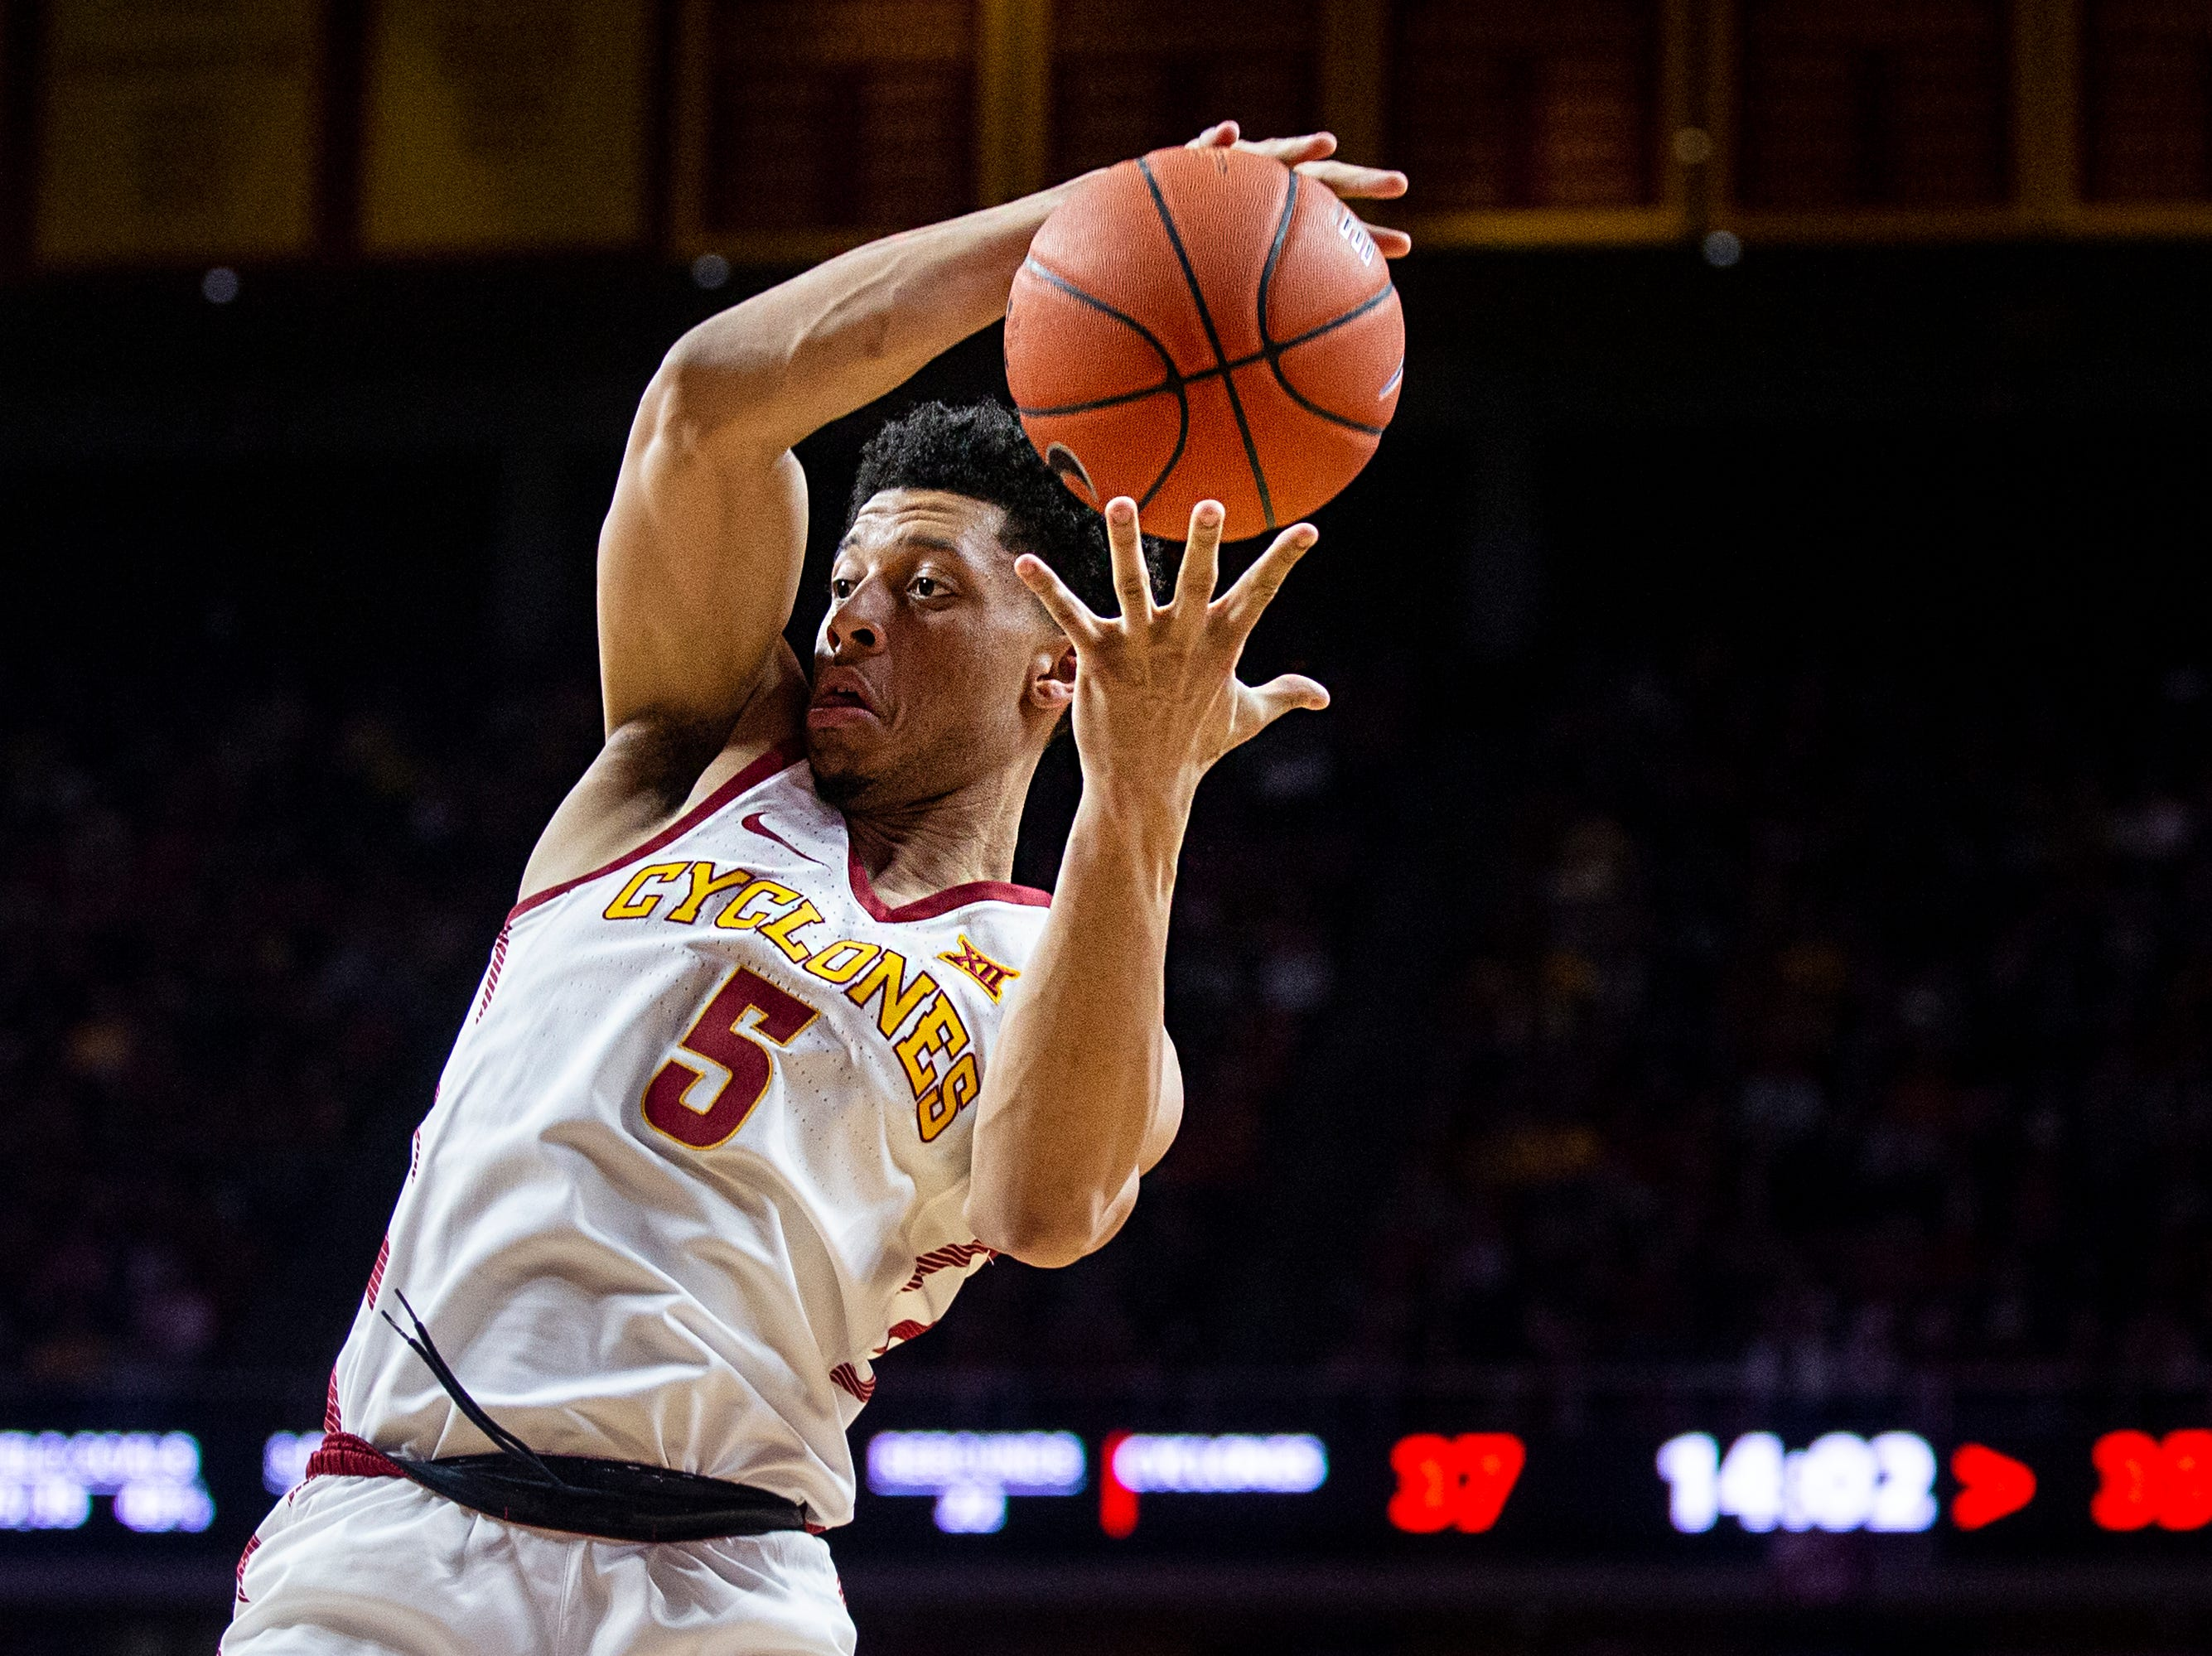 Iowa State's Lindell Wigginton tries to hold on to the ball during the Iowa State men's basketball game against Texas on Saturday, Feb. 2, 2019, in Hilton Coliseum. The Cyclones defeated the Longhorns 65-60.